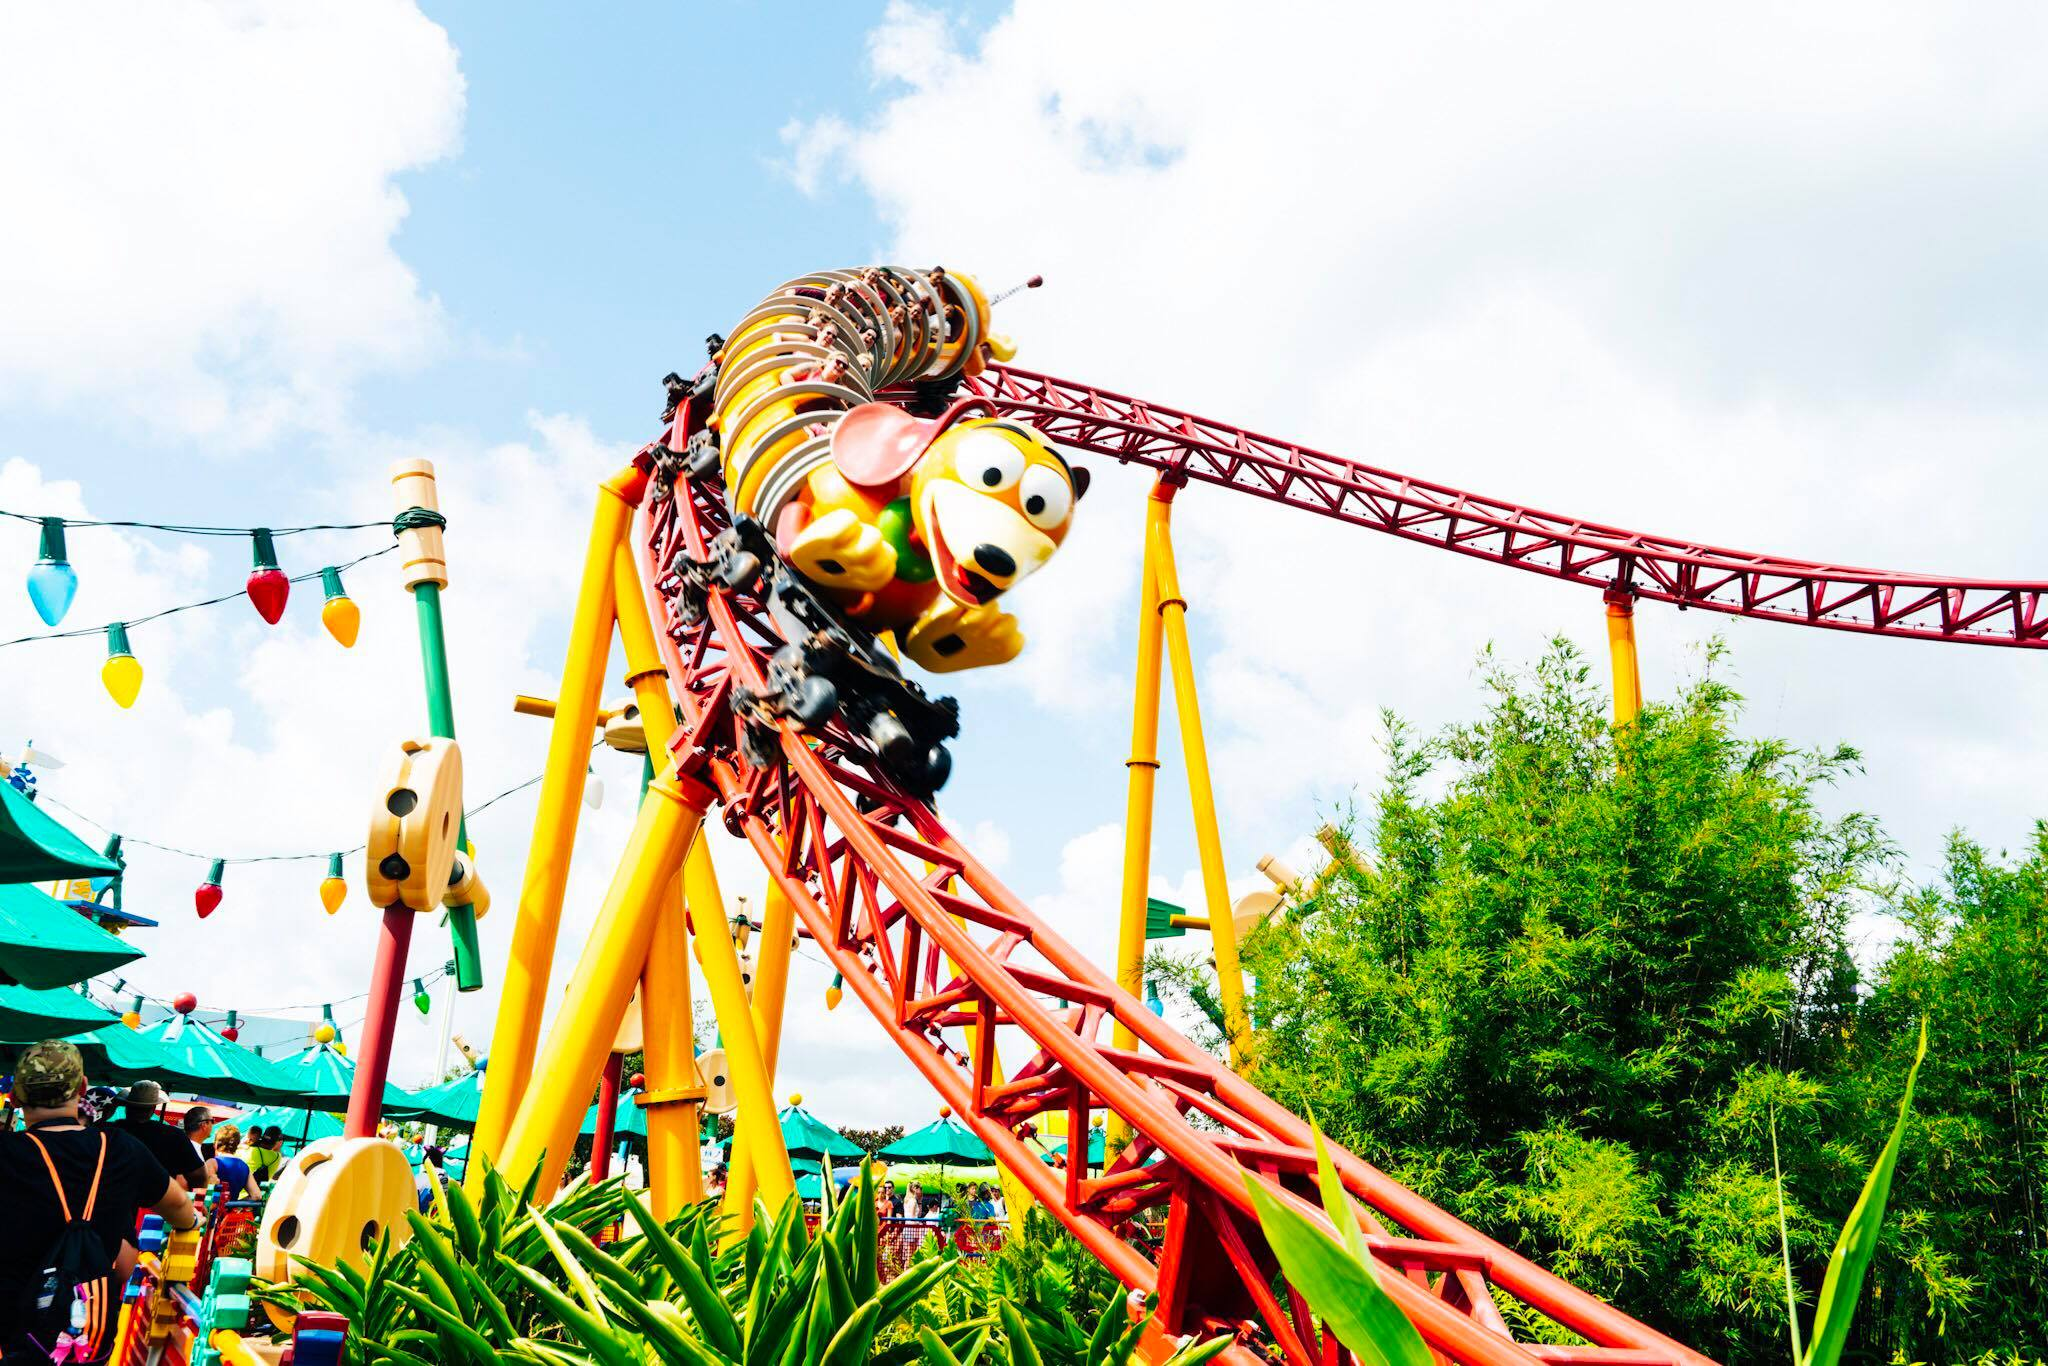 The Dos and Don'ts of Toy Story Land at Disney World